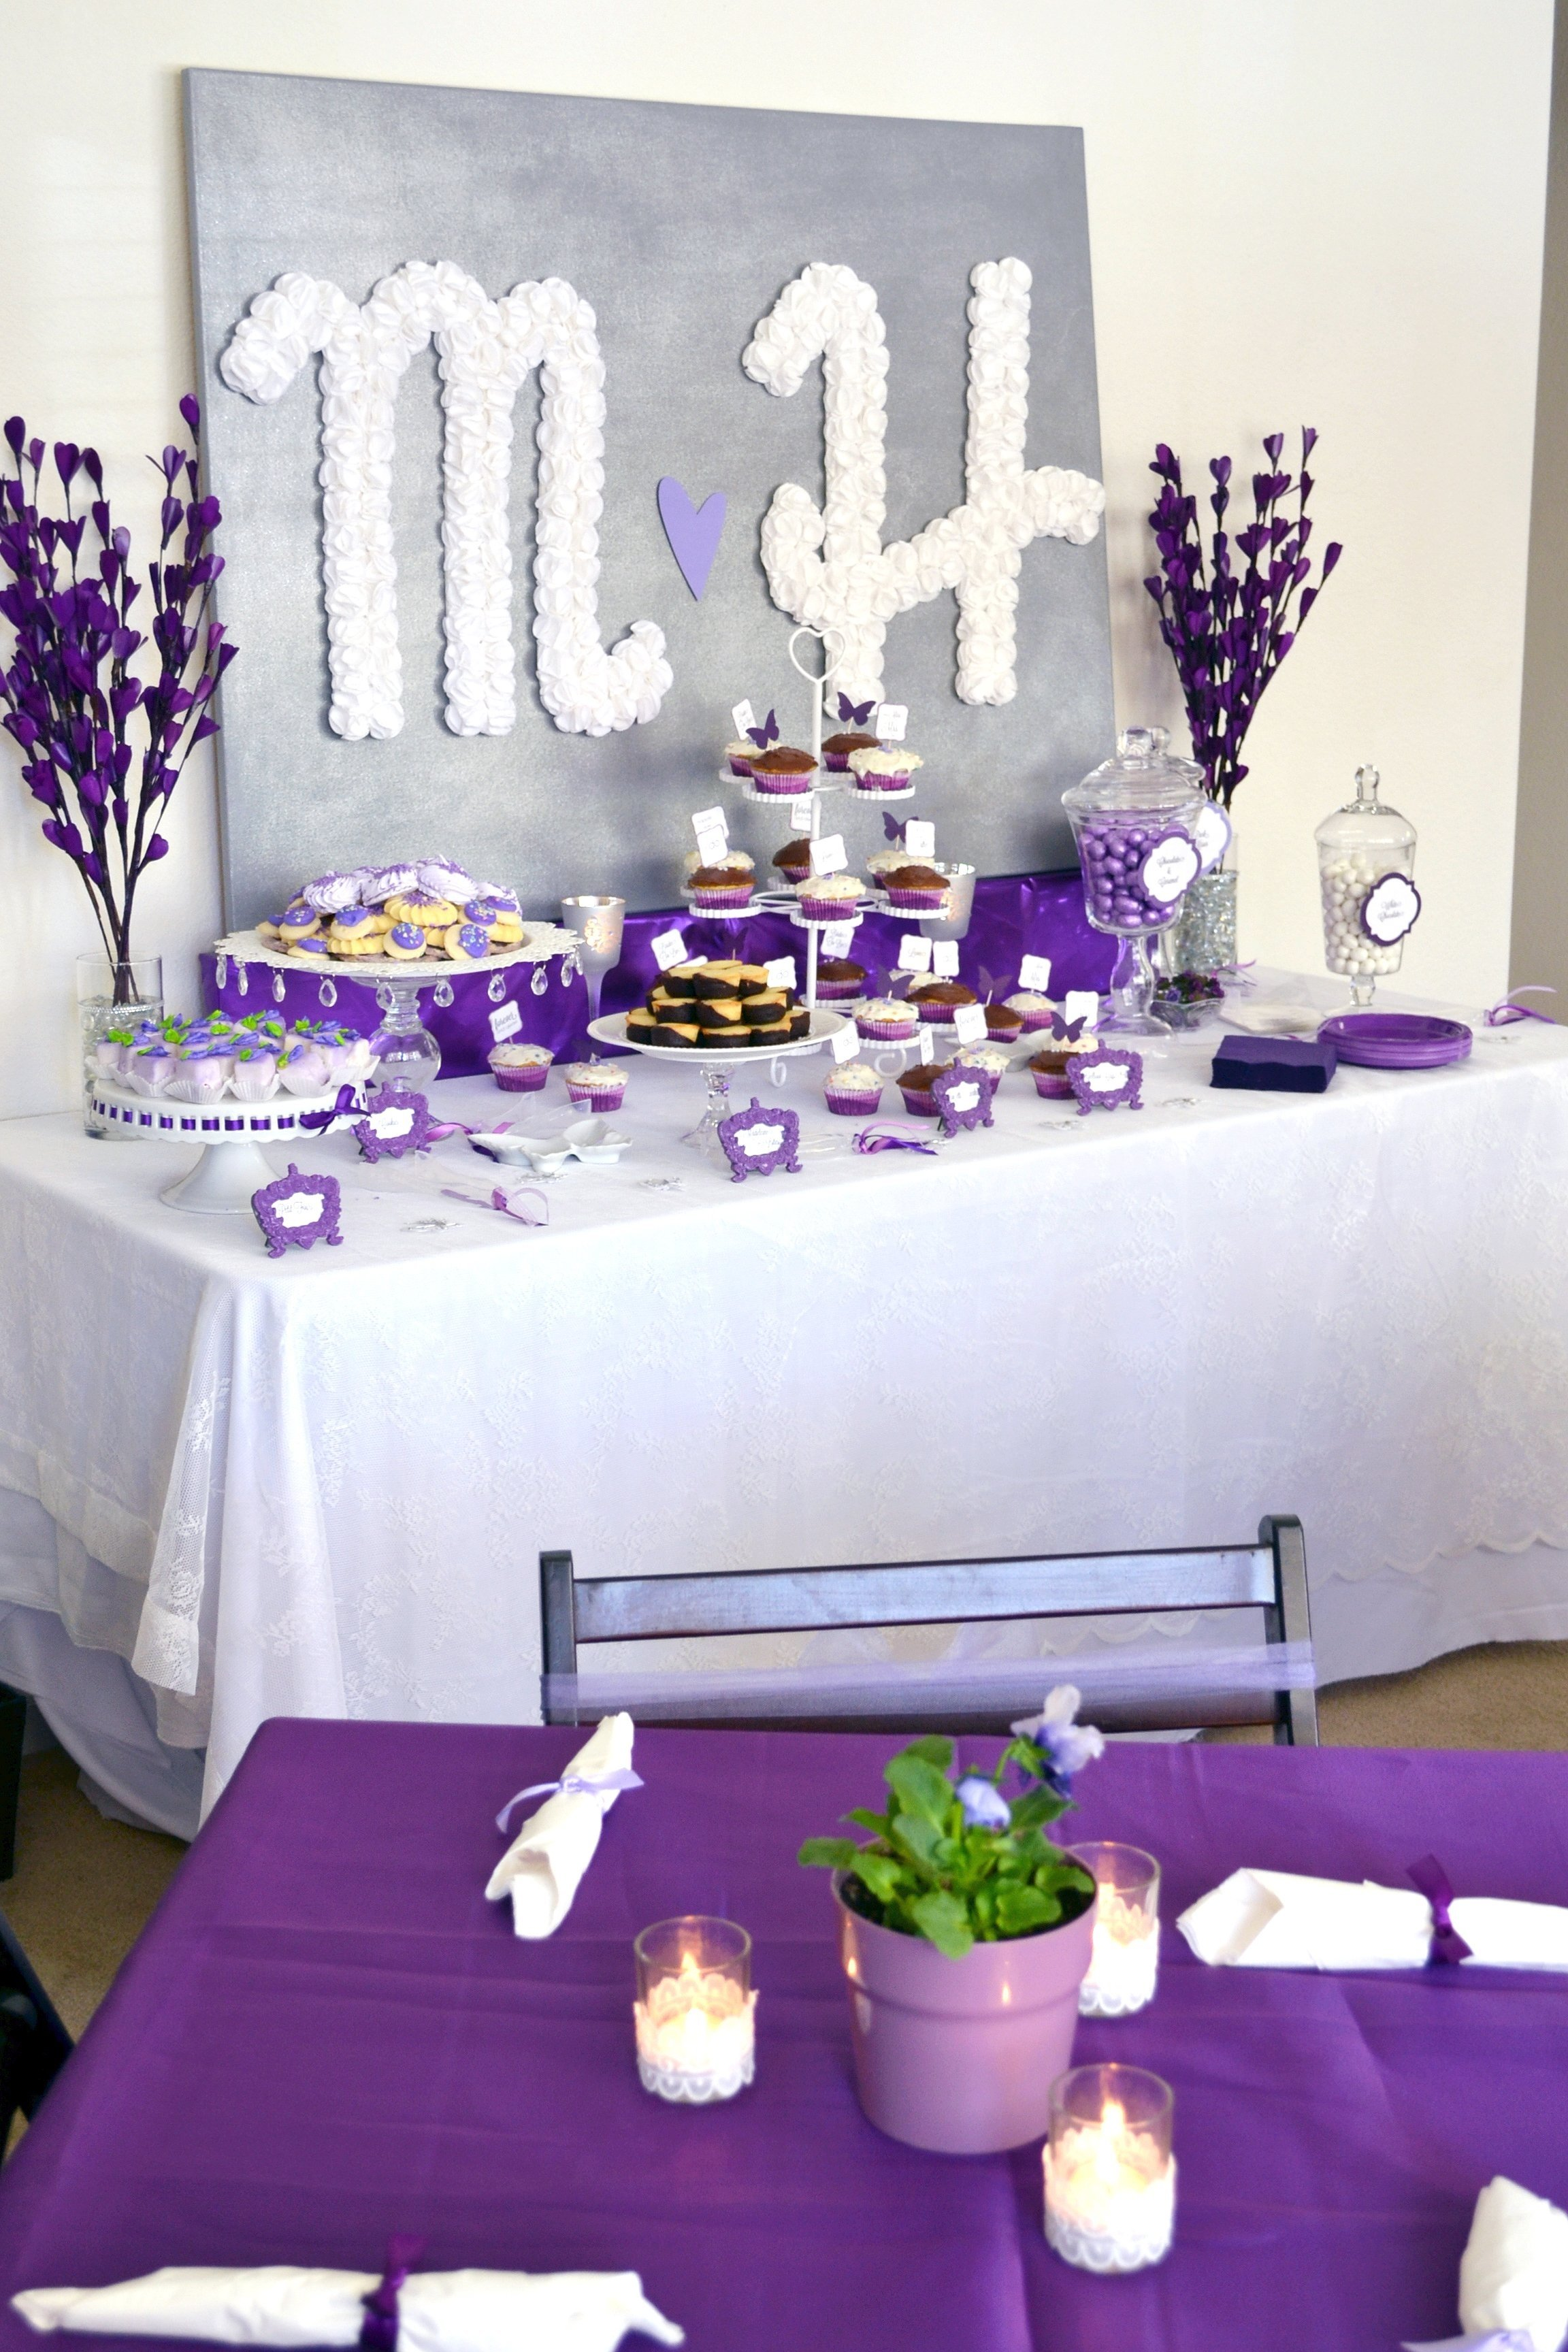 10 Most Recommended Bridal Shower Decoration Ideas Diy bridal shower decorations diy all in home decor ideas bridal